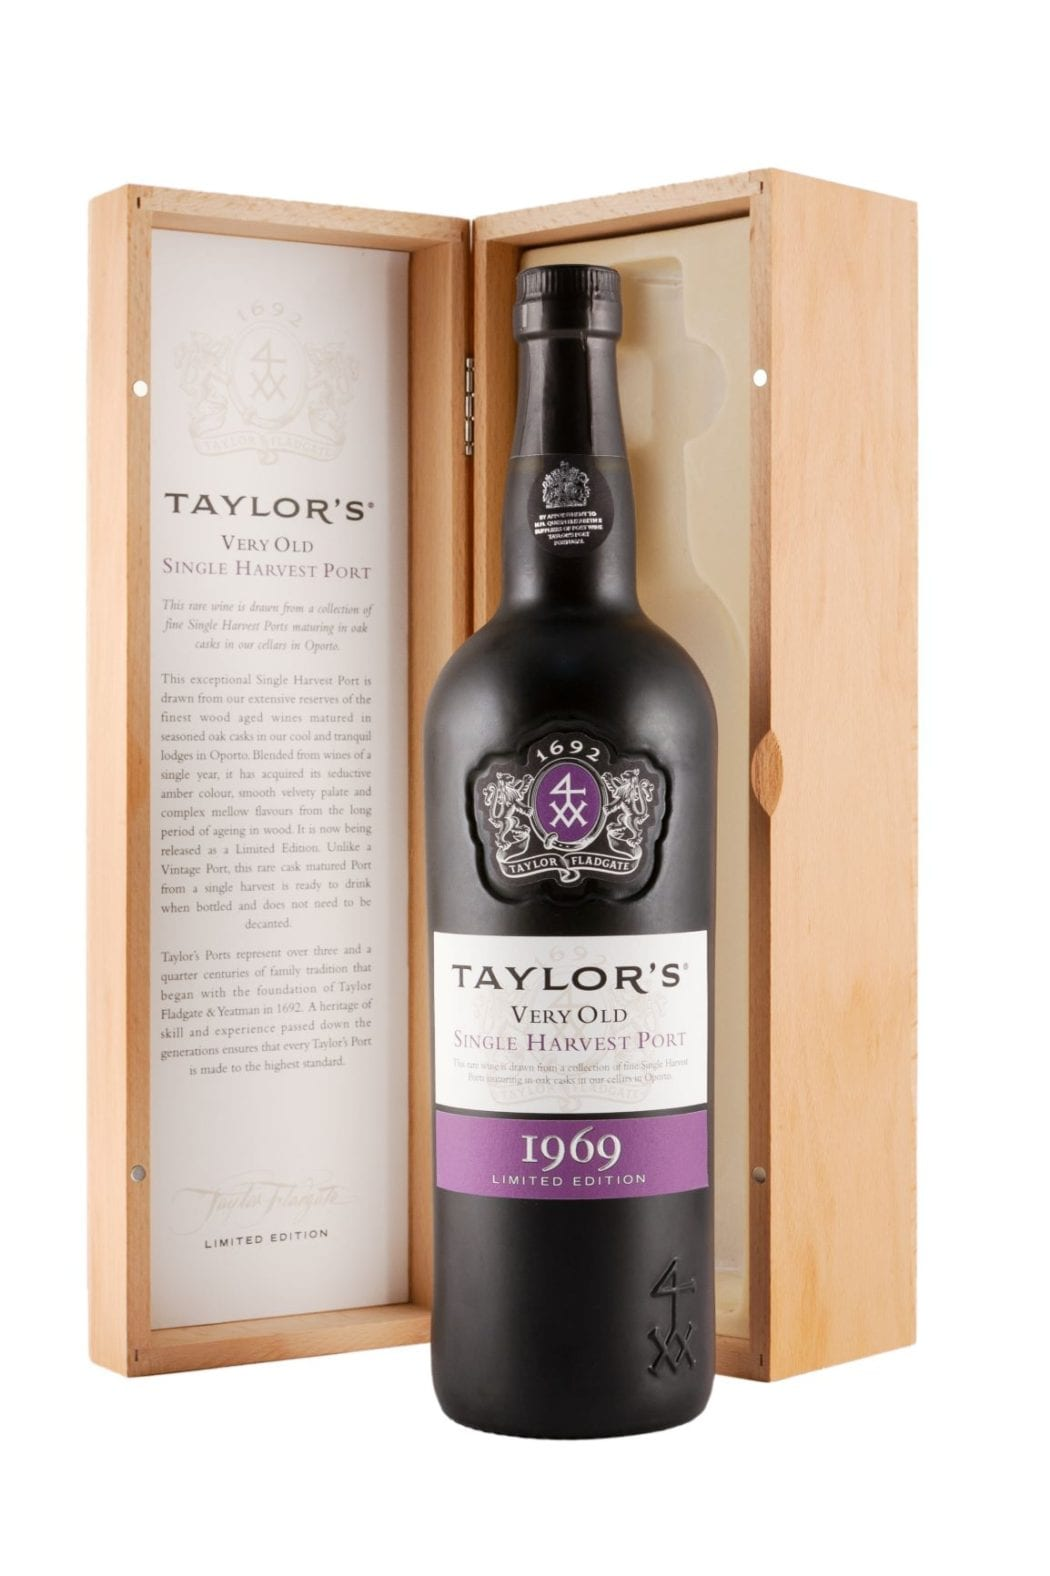 Taylors Single Harvest 1969 bottle and box